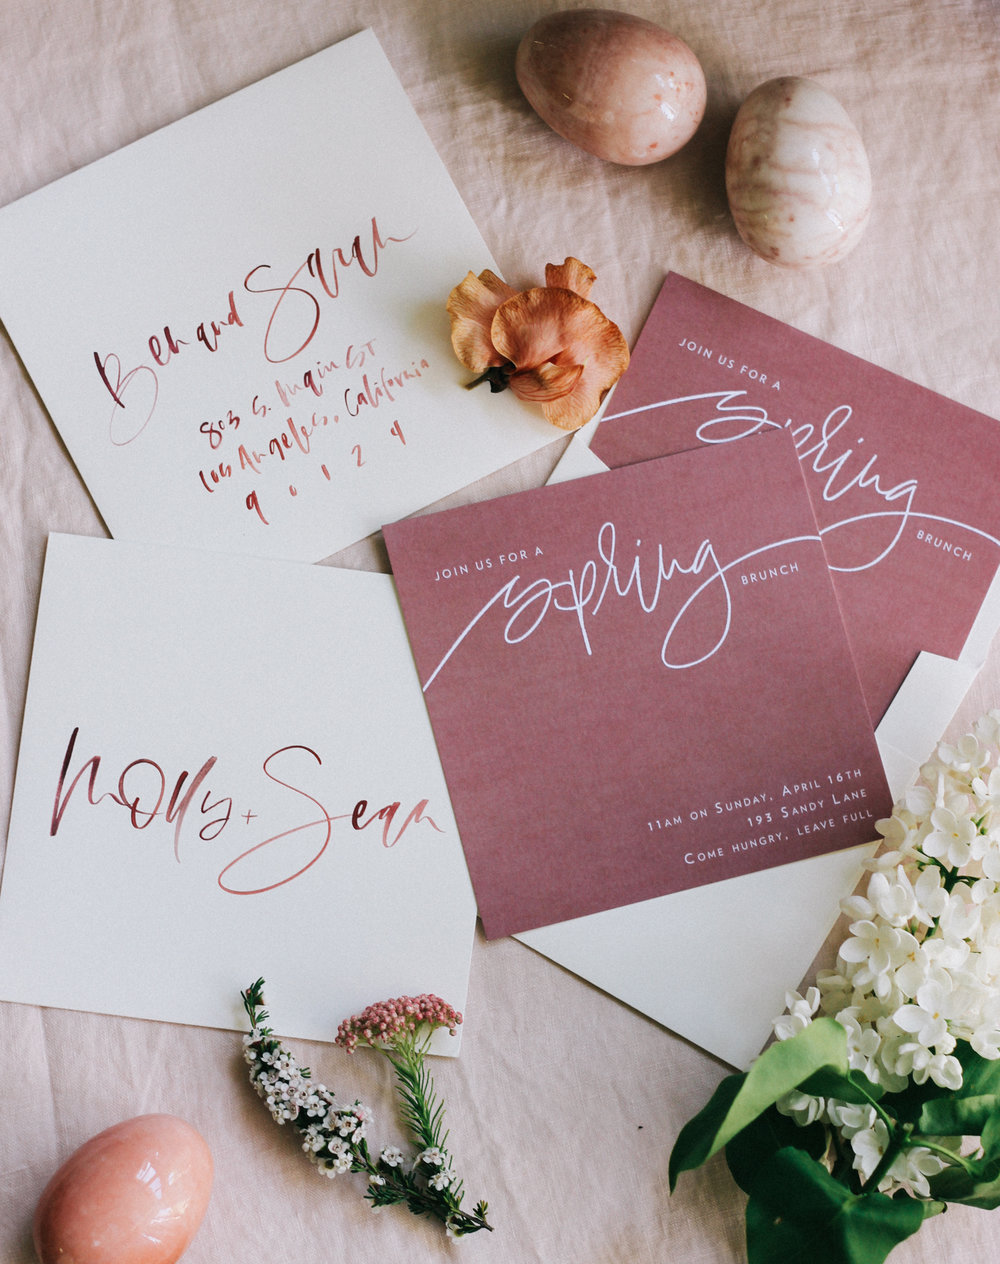 Spring brunch hand lettered invitations | A Fabulous Fete